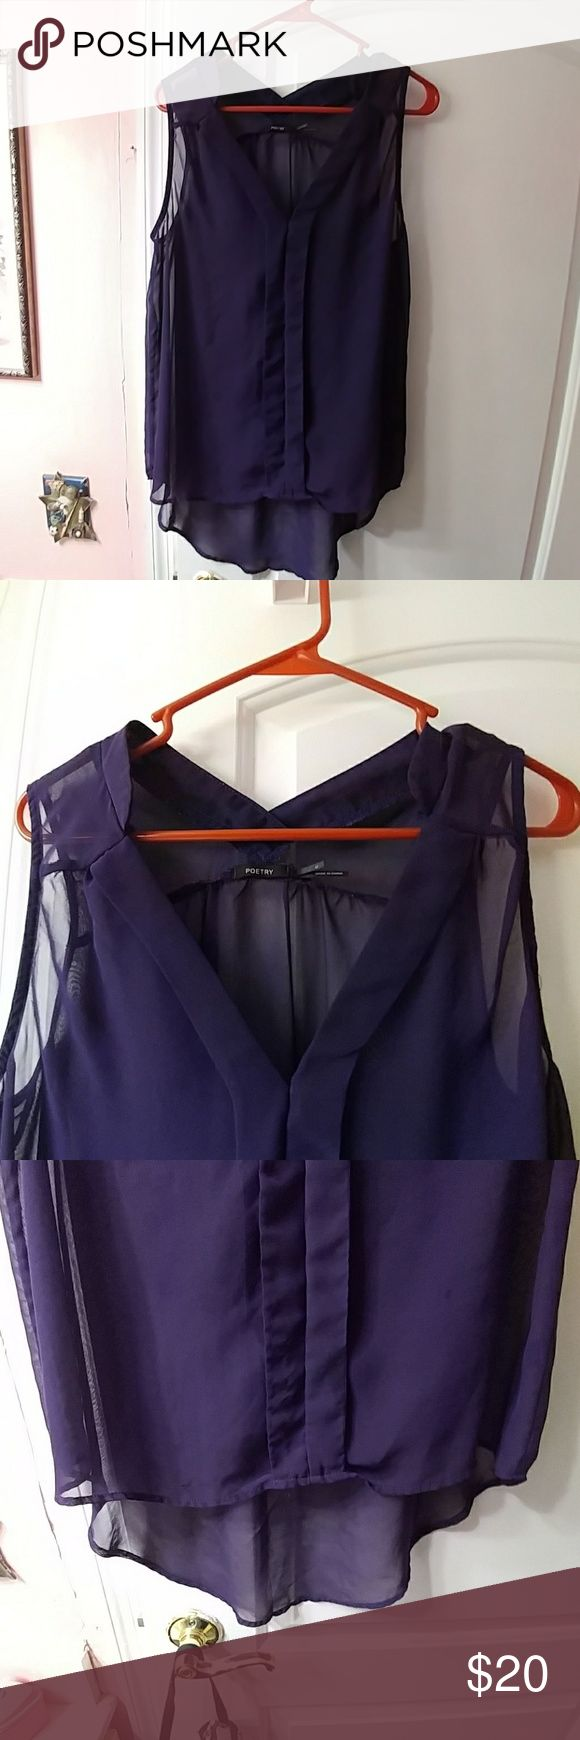 Blouse the one I had on my profile Very sheer purple high low blouse folder in the front very nice Poetry Tops Blouses